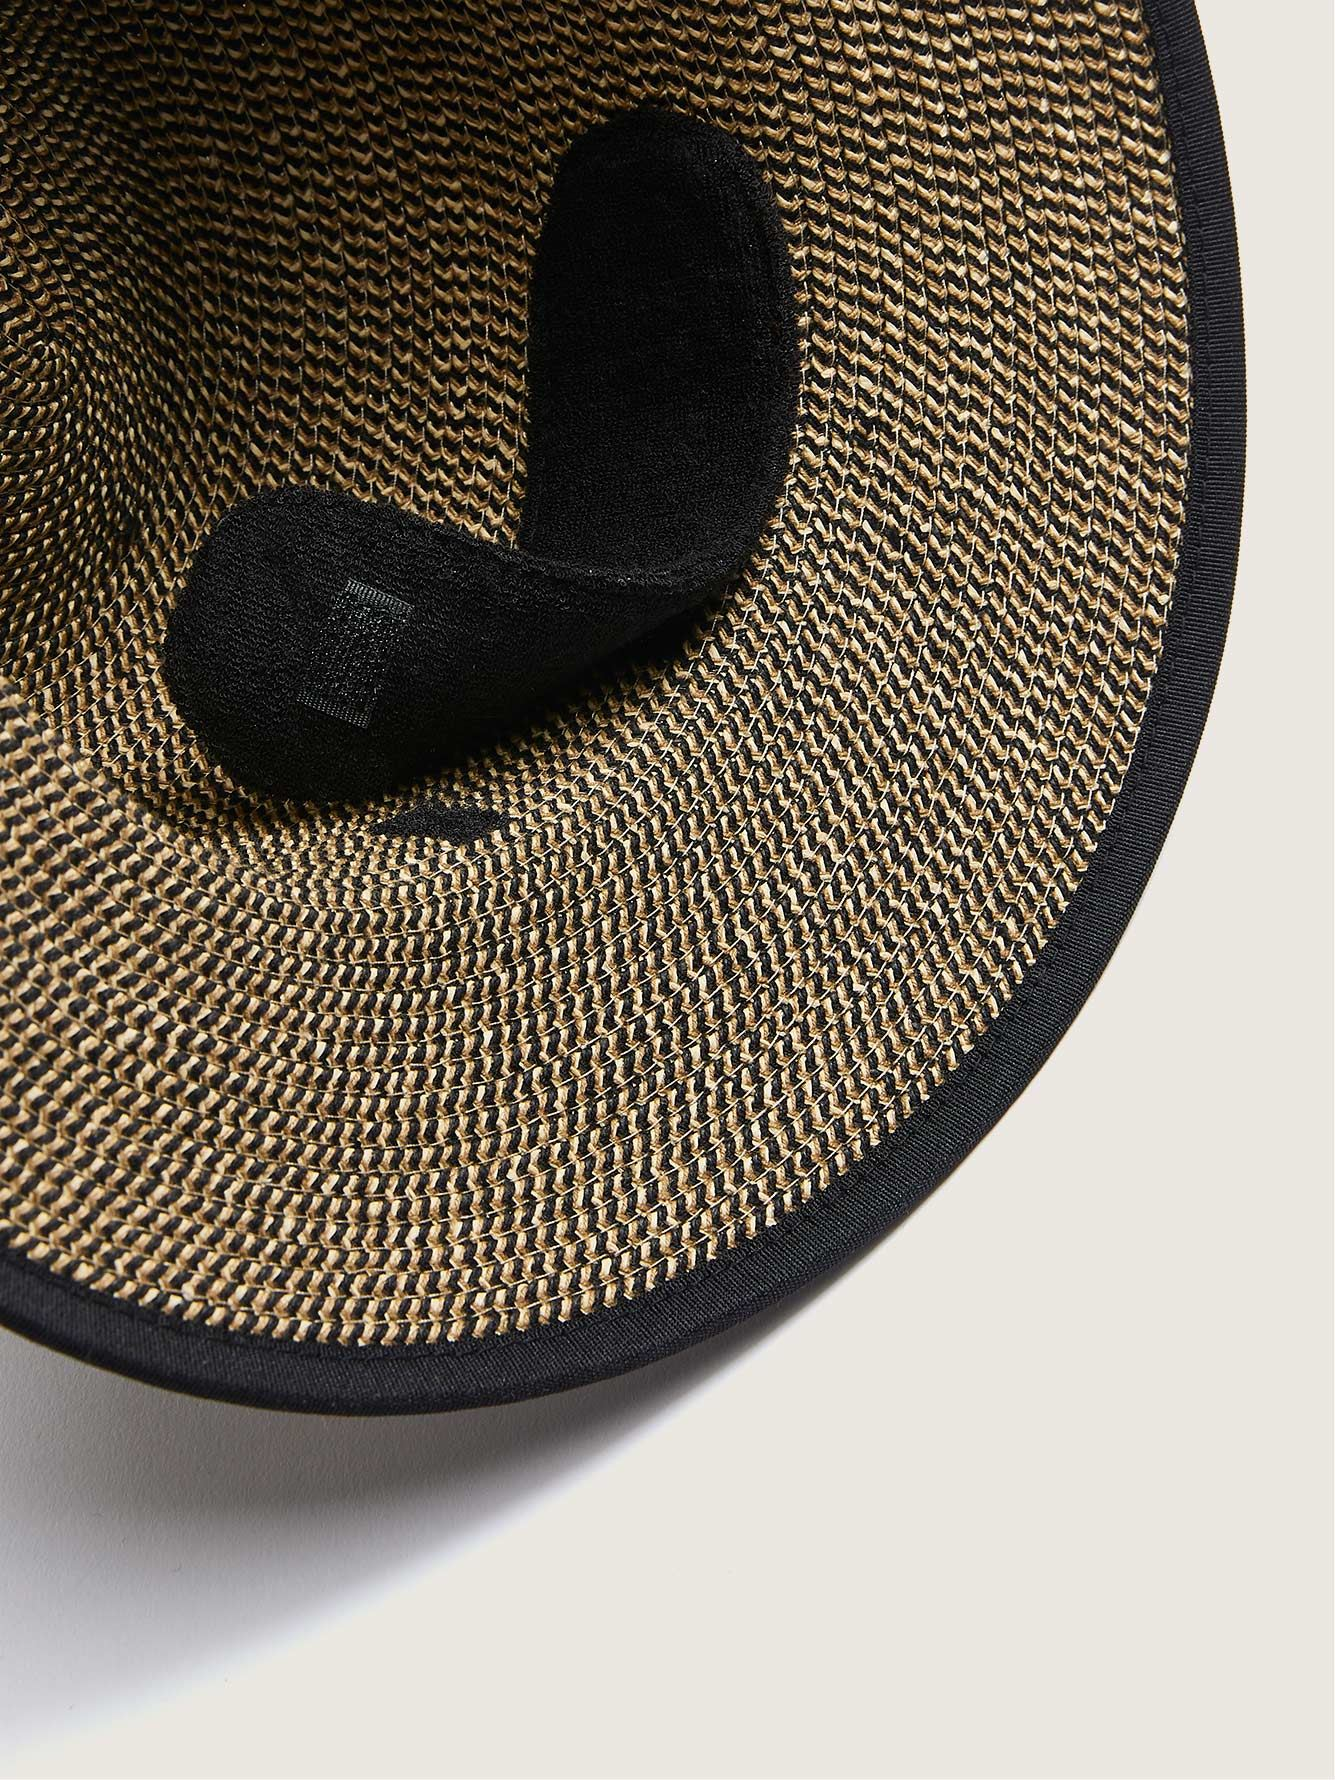 Two-Tone Straw Hat - Canadian Hat